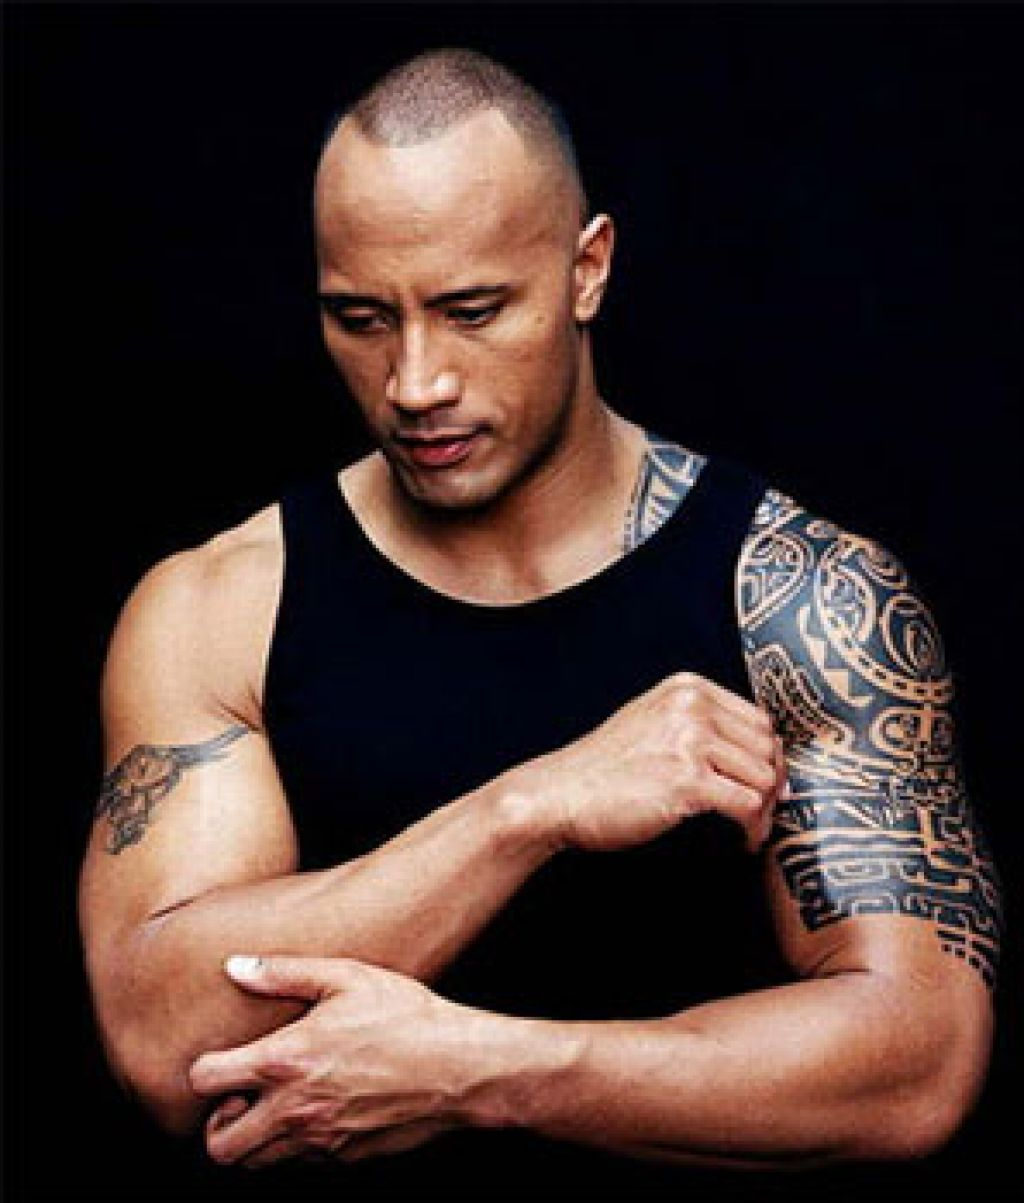 Dwayne Johnson Famous Tattoo Artist Pictures